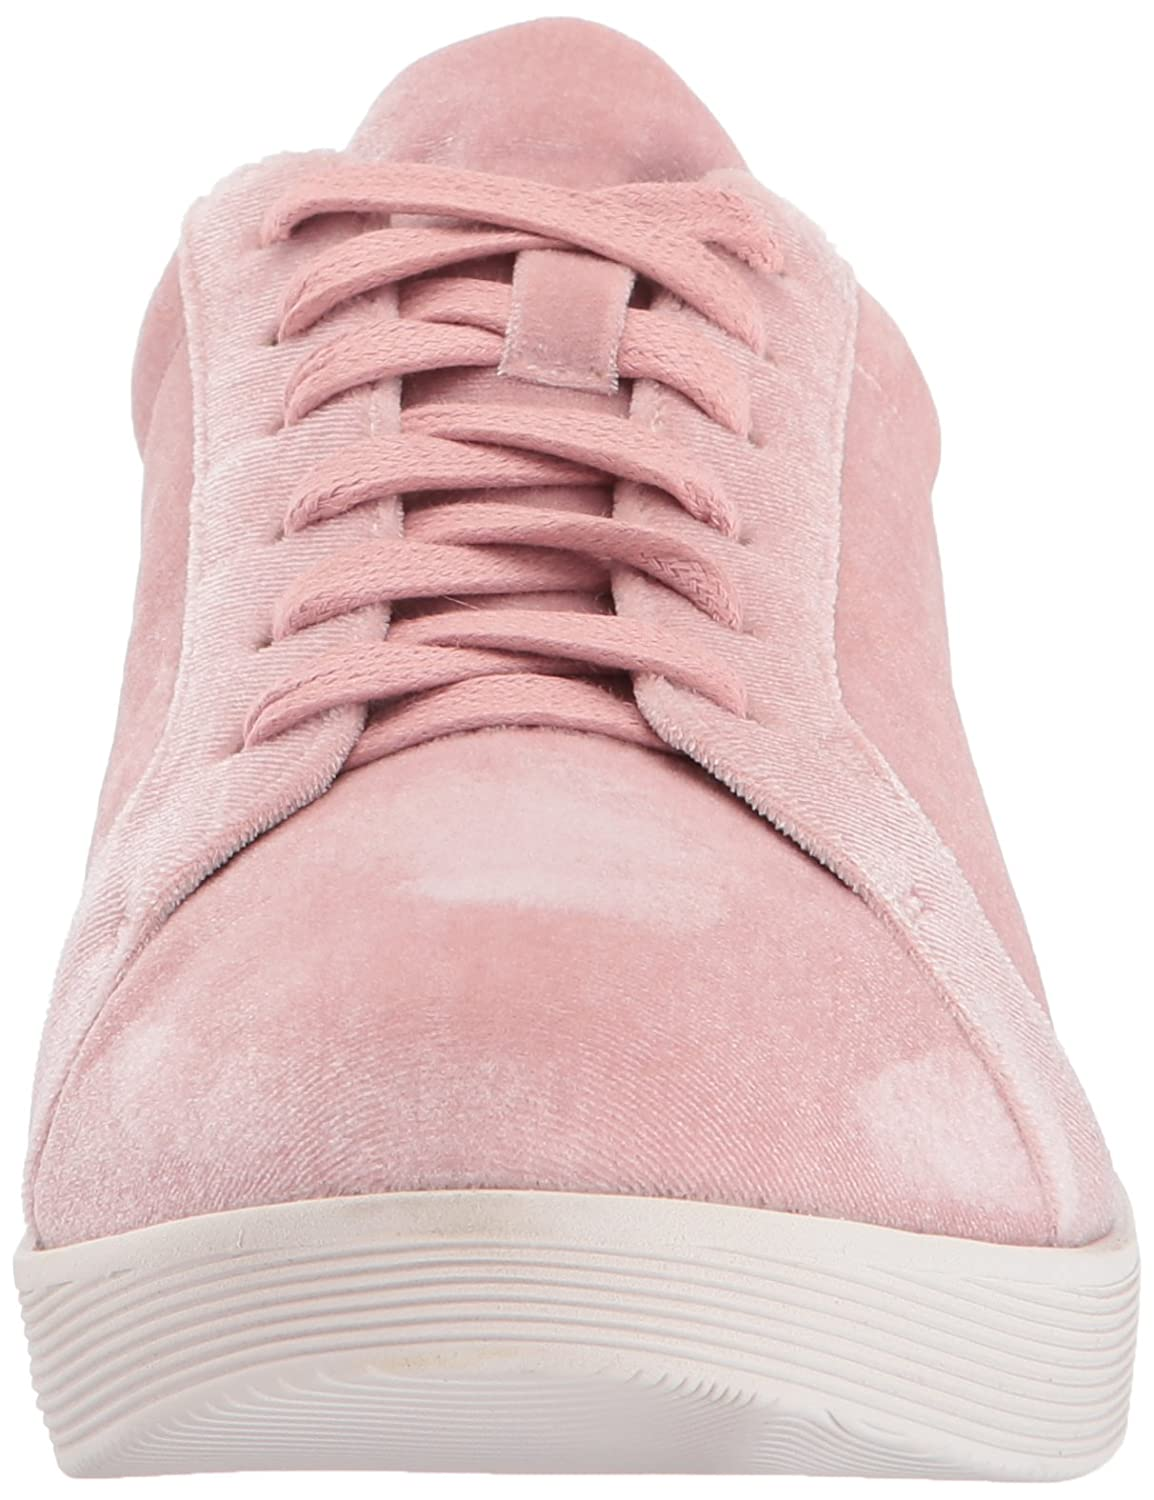 Gentle Souls by Kenneth Cole Women's Haddie Low Profile Fashion B072F29ZHQ Sneaker Embossed Fashion Sneaker B072F29ZHQ Fashion 7 M US|Blush 90799e